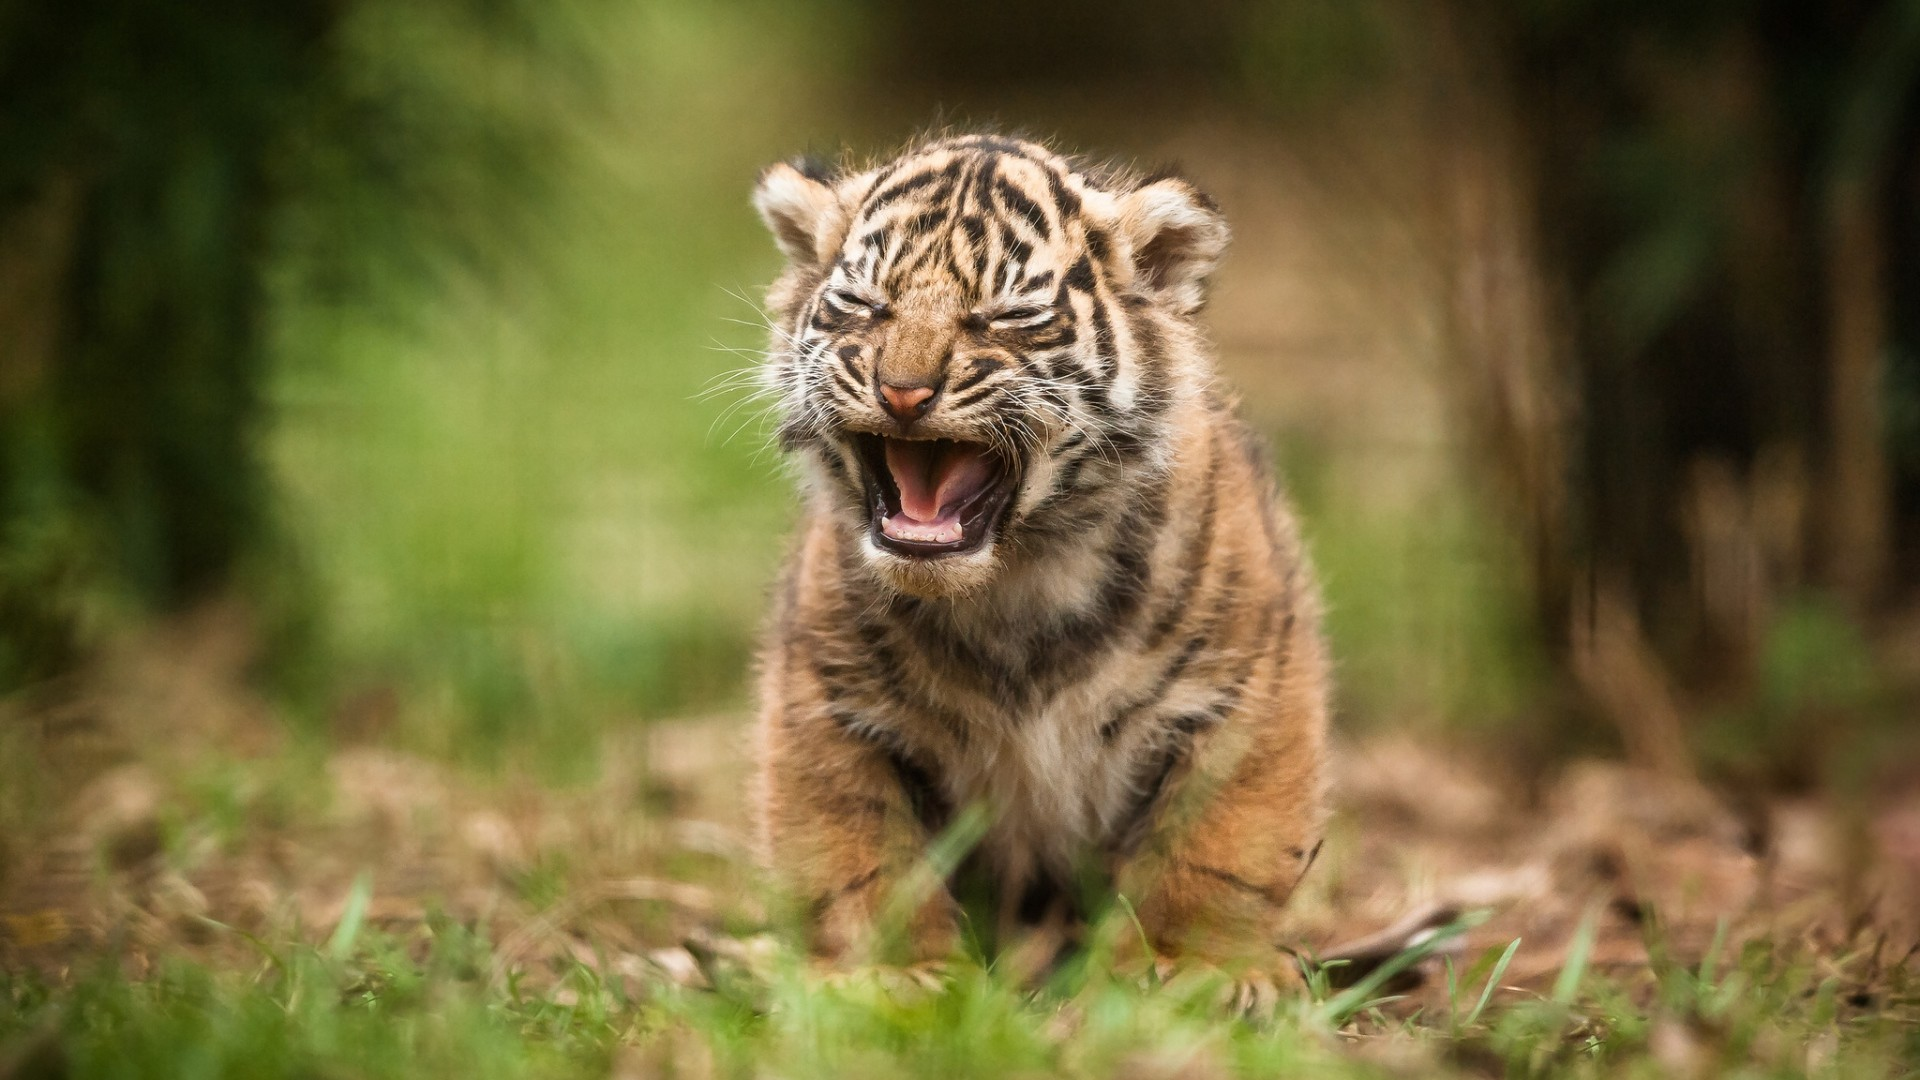 Search Results For Baby Tiger Wallpaper Hd Adorable Cute Baby Tiger Wallpaper Hd 1920x1080 Download Hd Wallpaper Wallpapertip